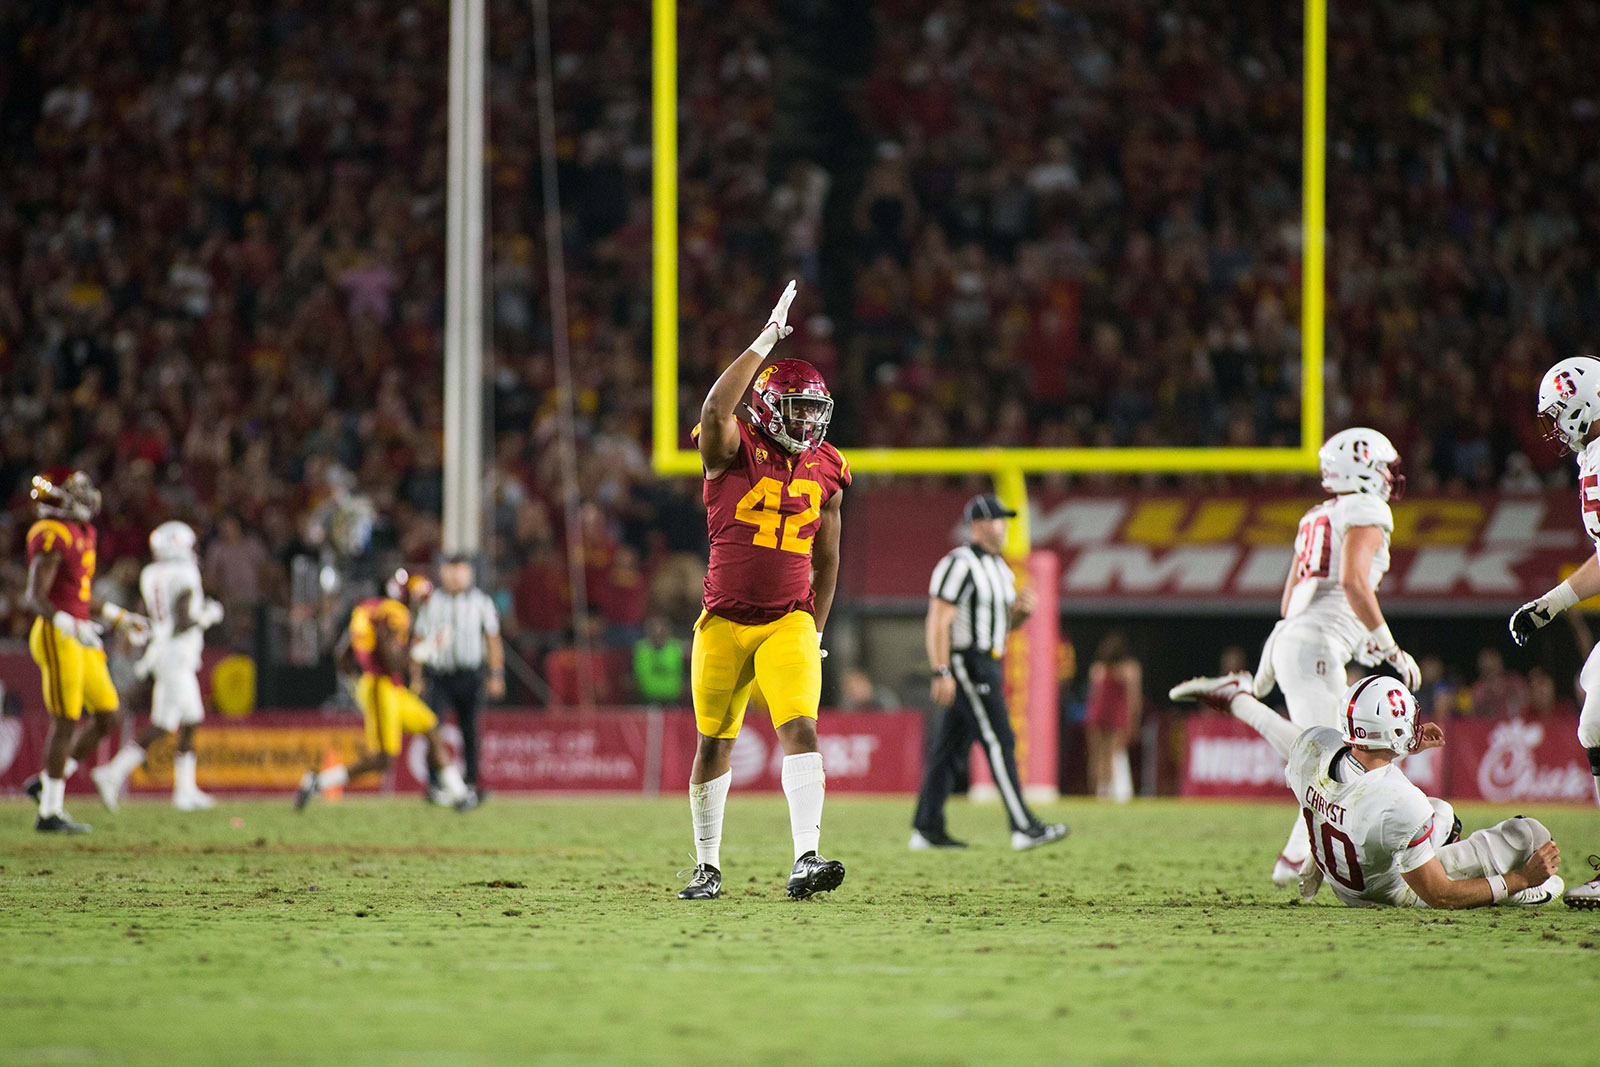 Run game headlines Stanford-USC rivalry